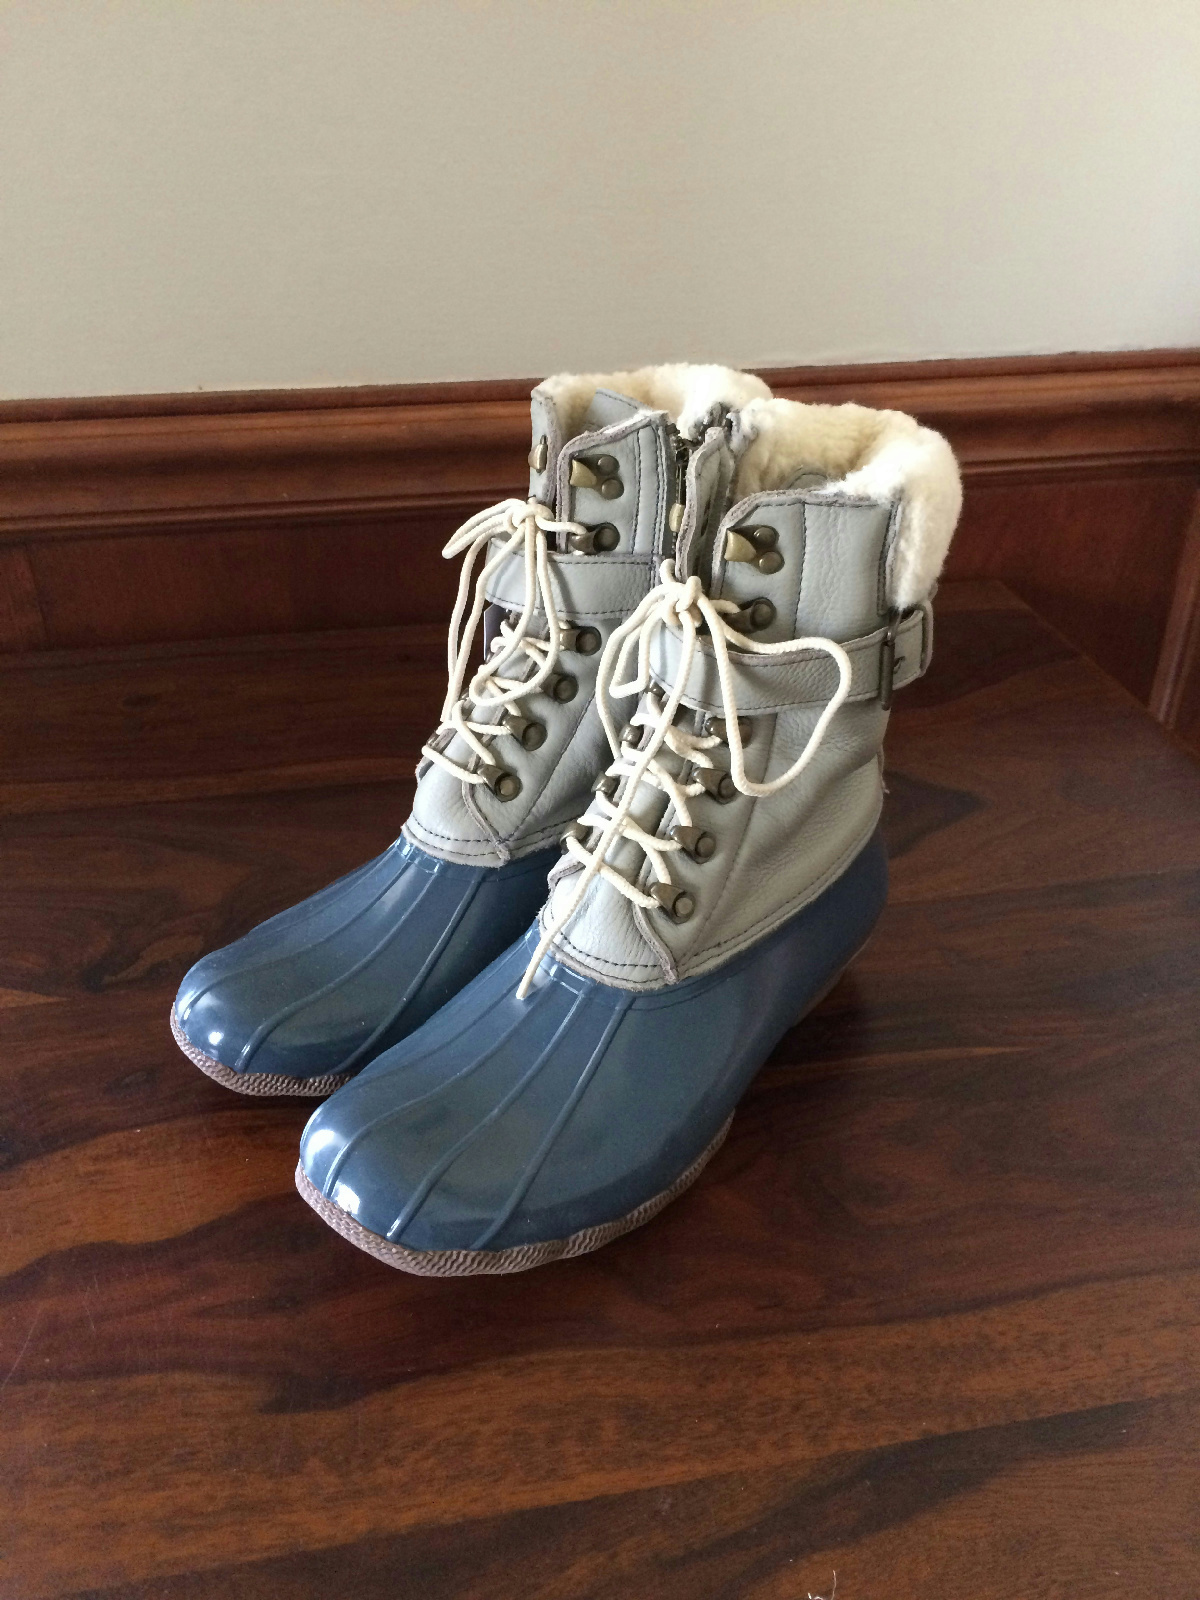 sperry top sider j crew leather shearwater boots boulder